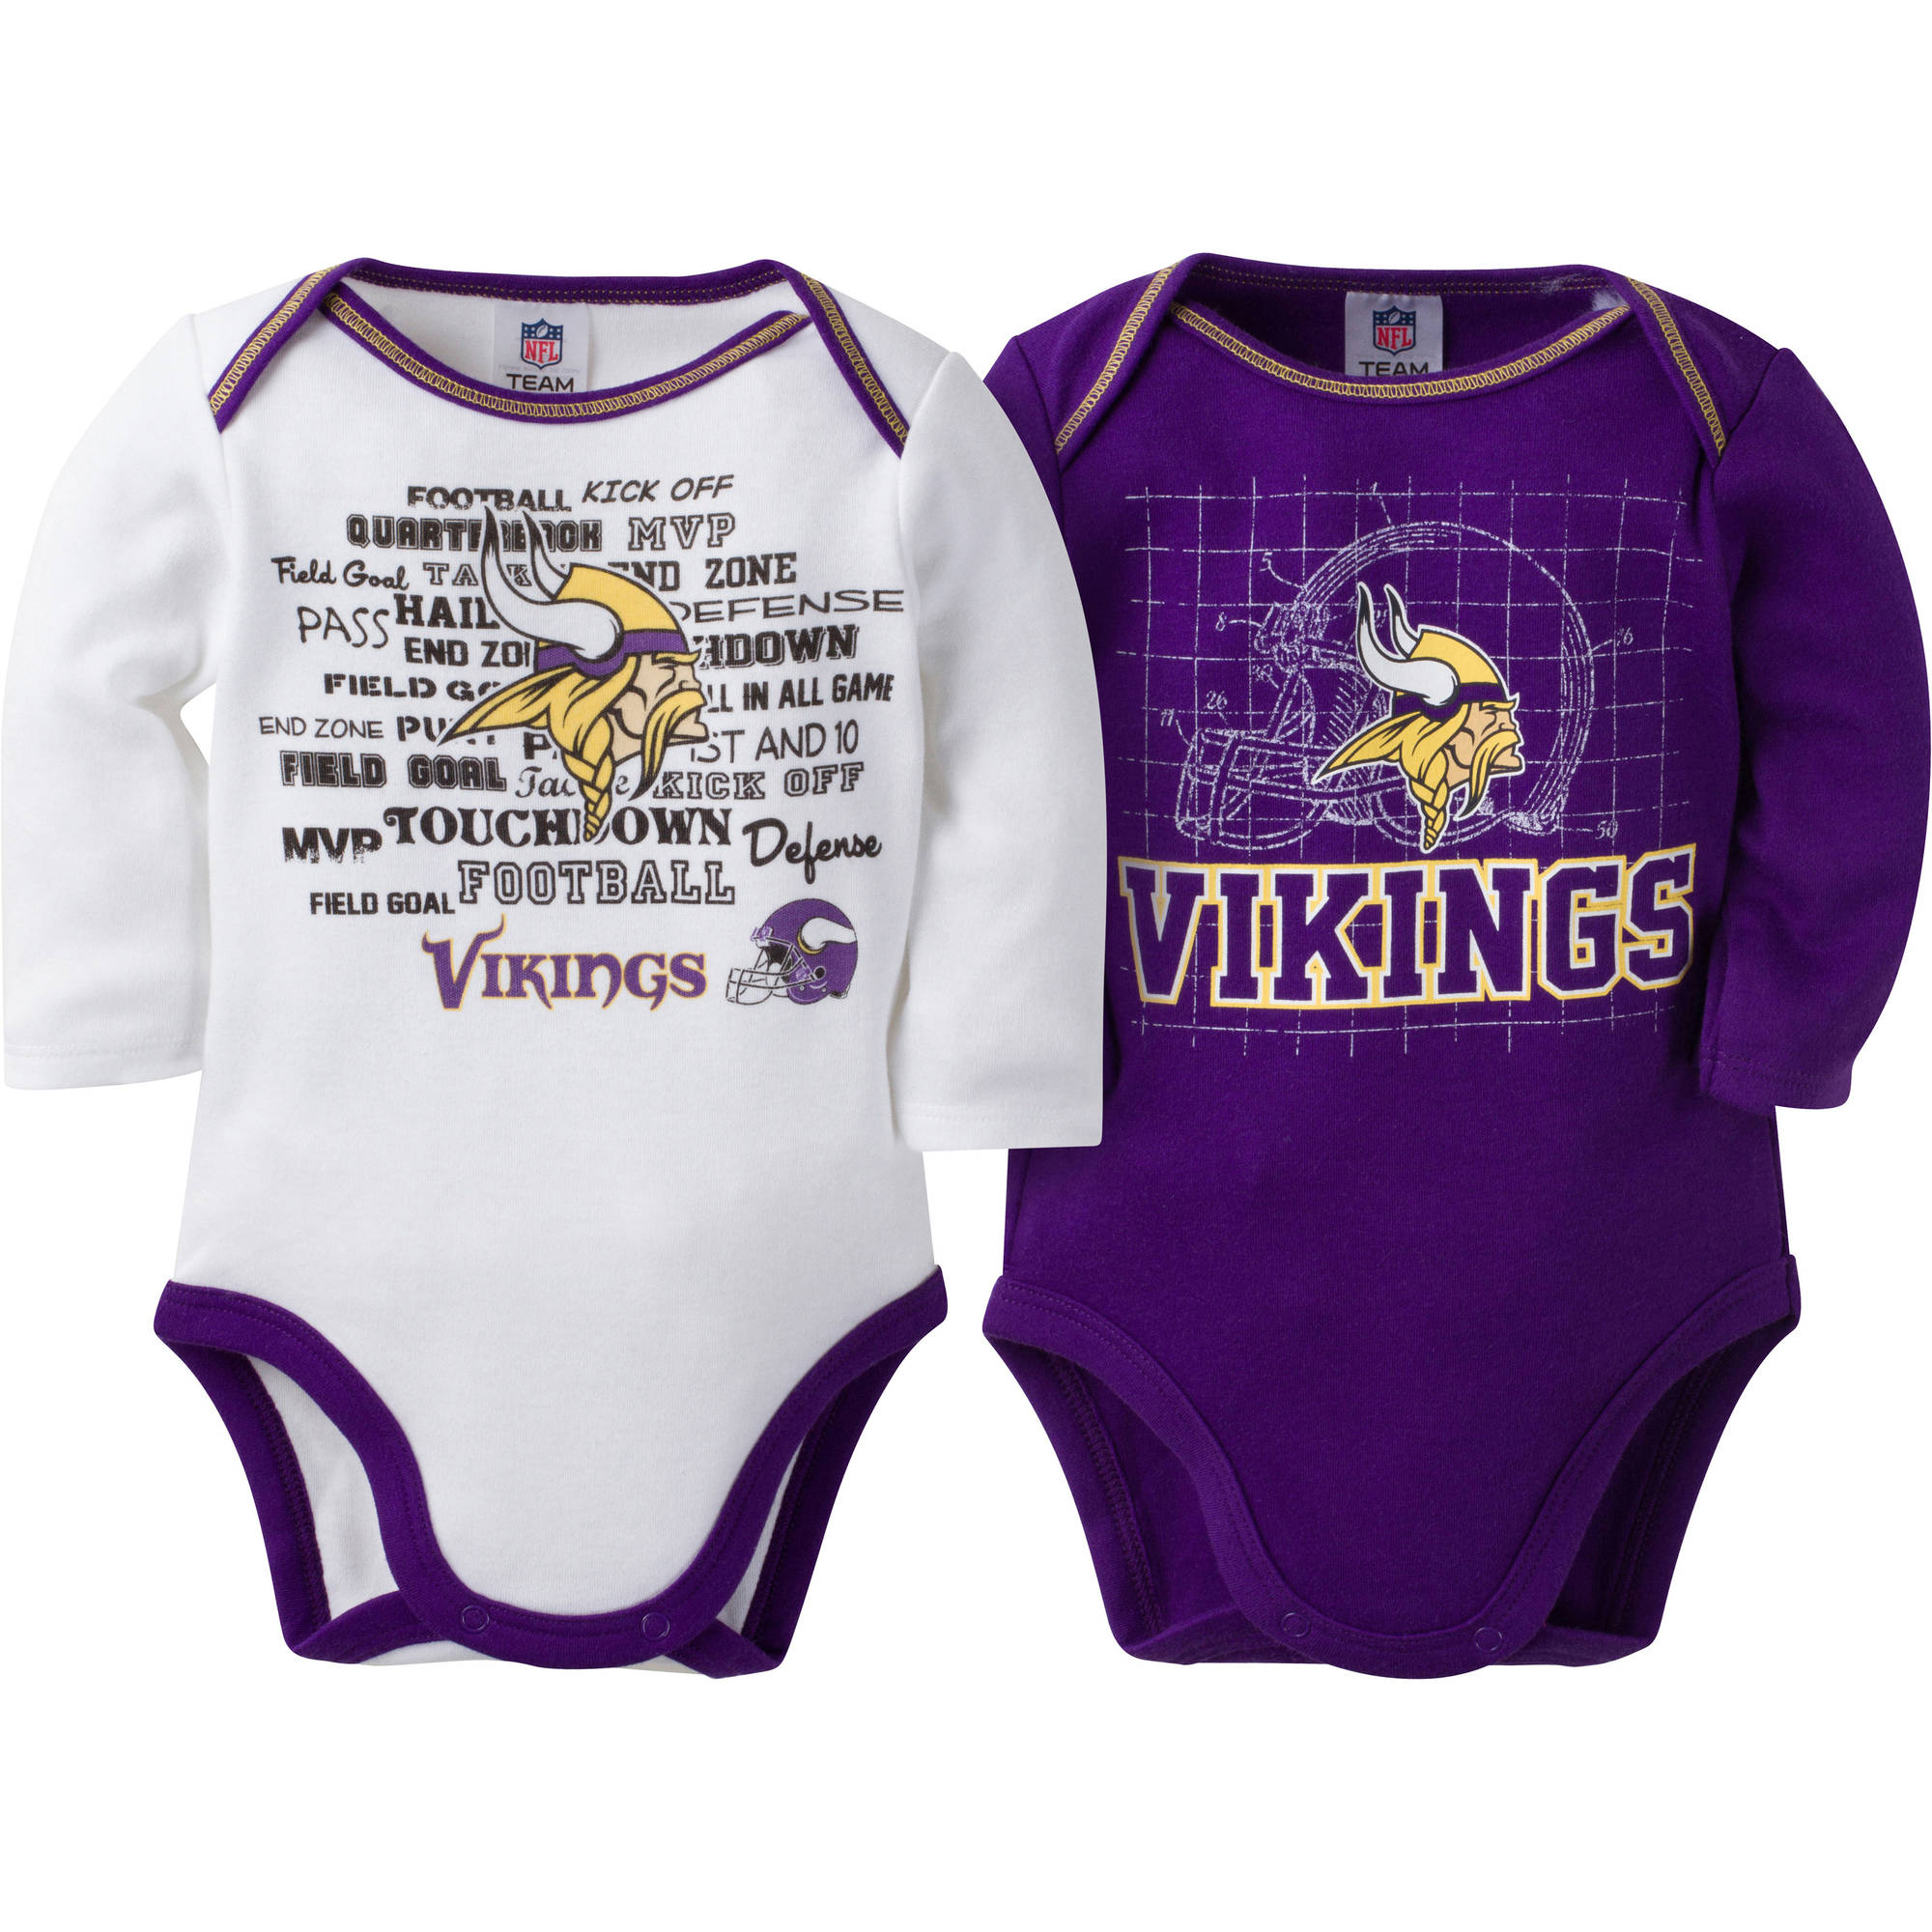 NFL Minnesota Vikings Baby Boys Long Sleeve Bodysuit Set, 2-Pack